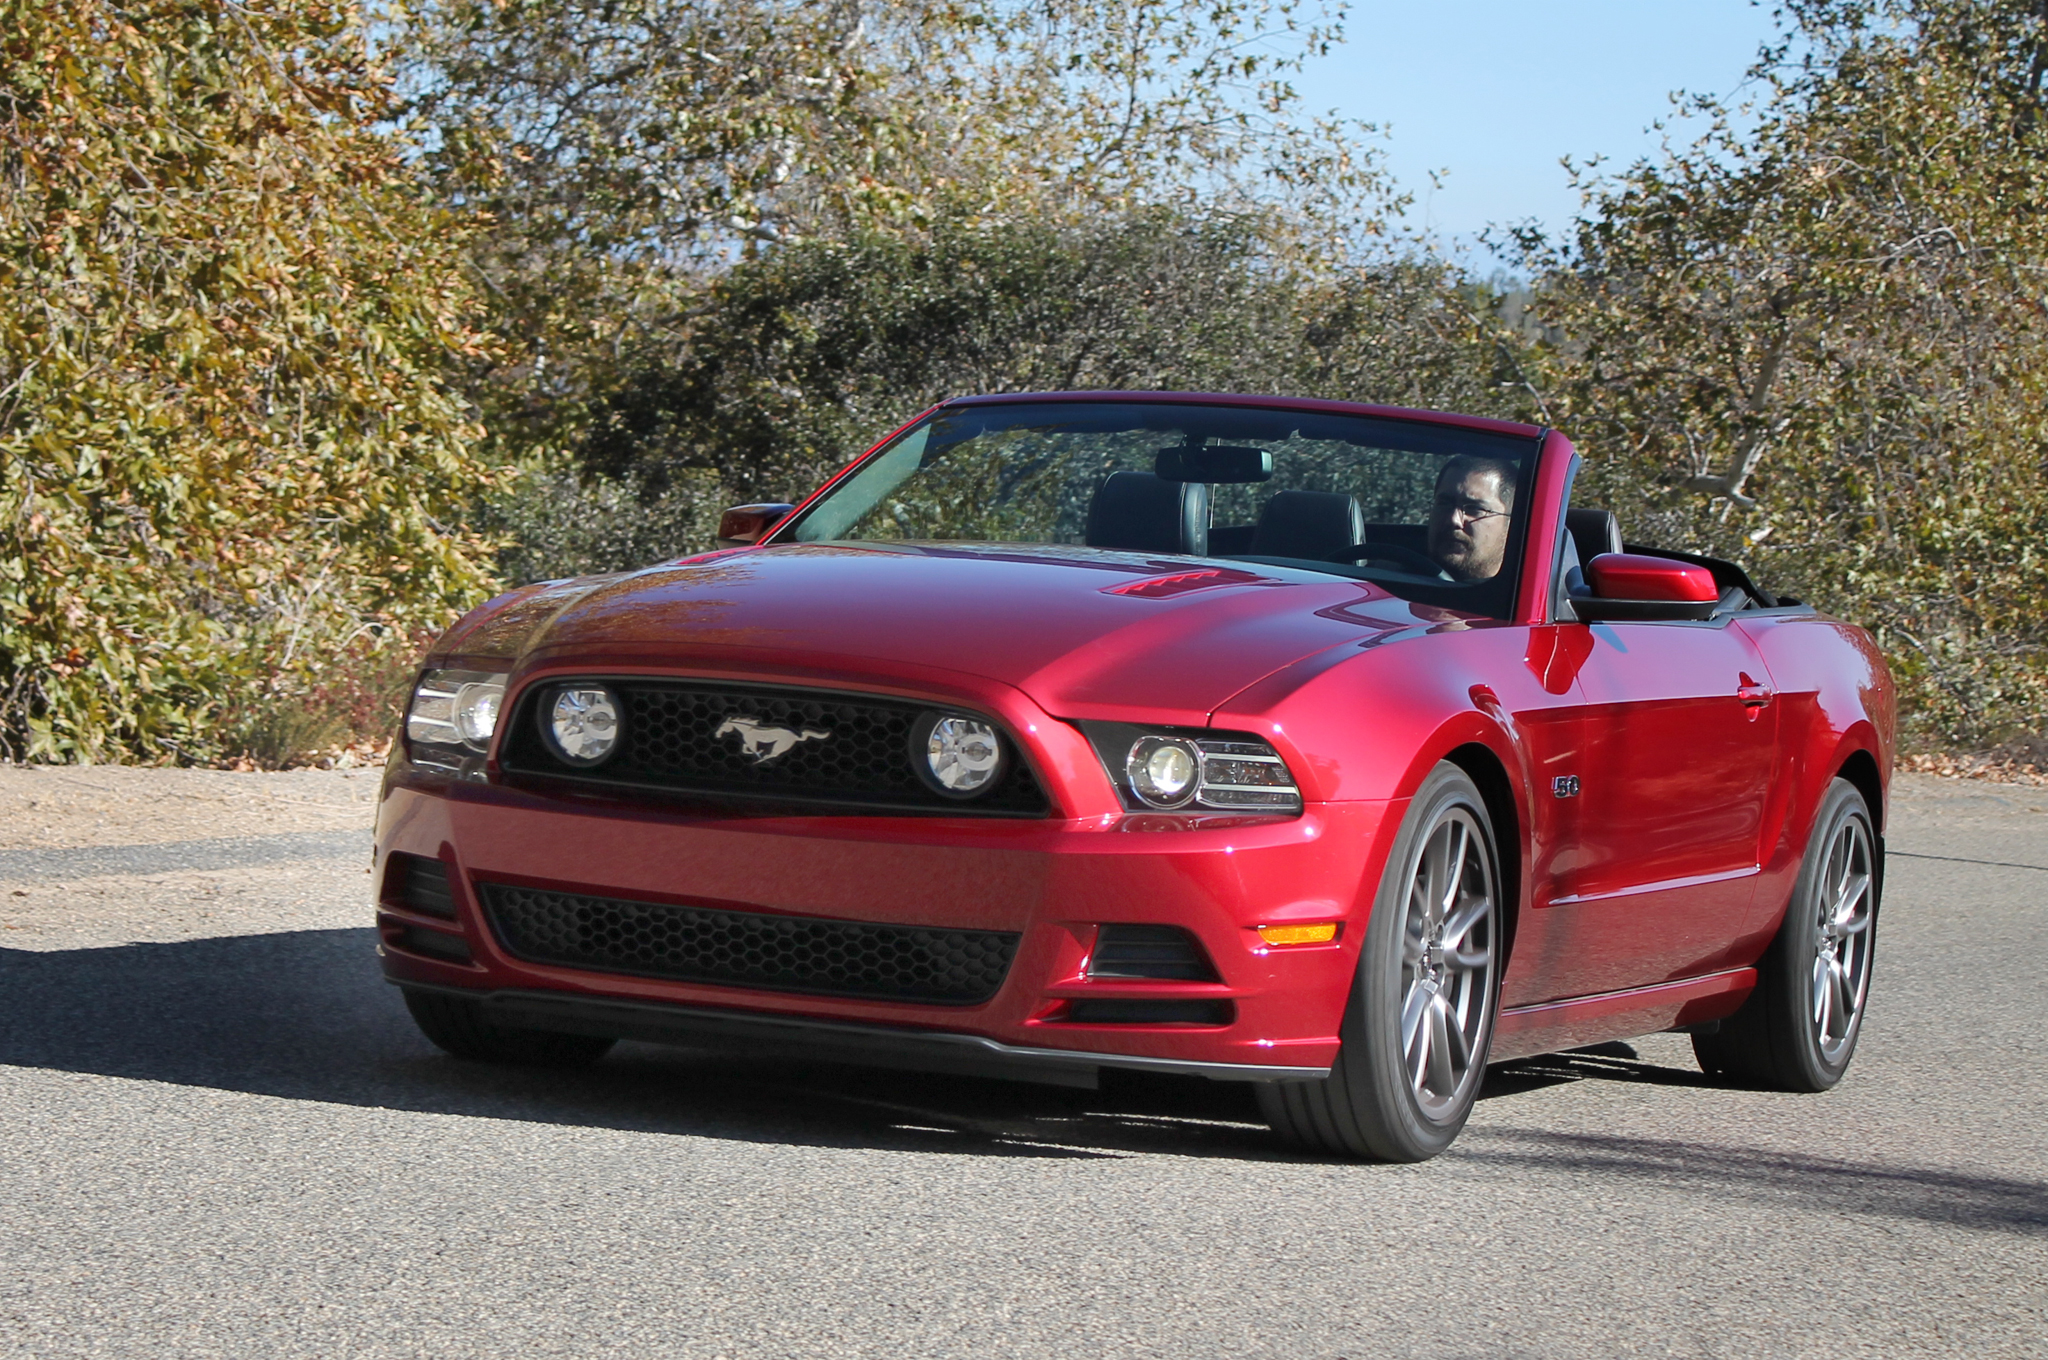 2014 Ford Mustang GT Convertible First Test - Motor Trend